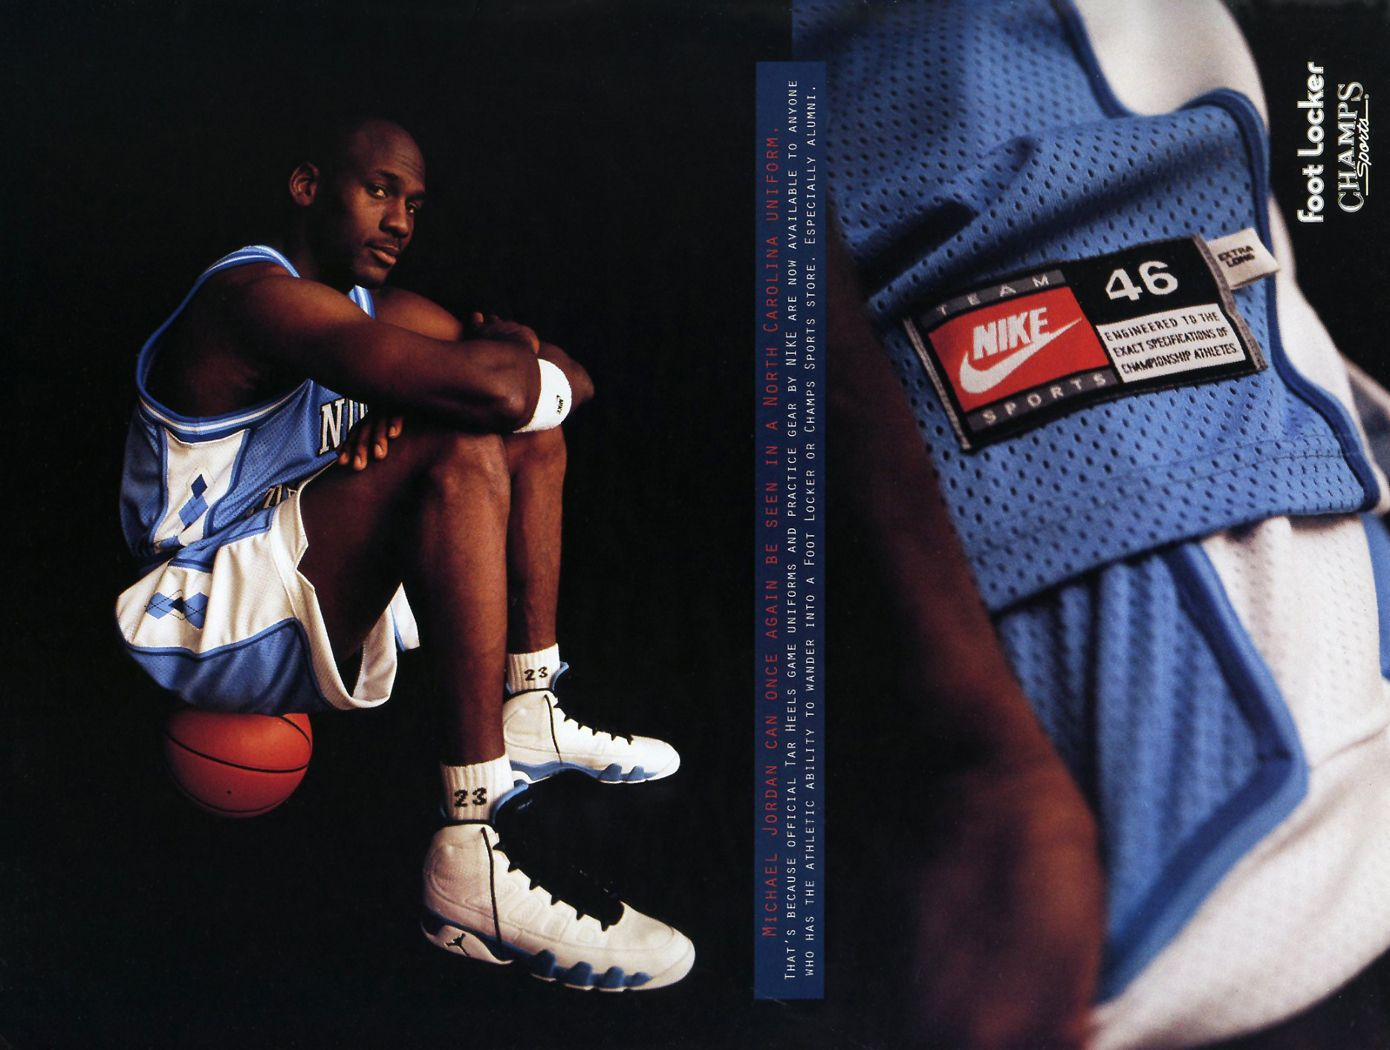 From north carolina top 15 powder blue air jordan releases of all time